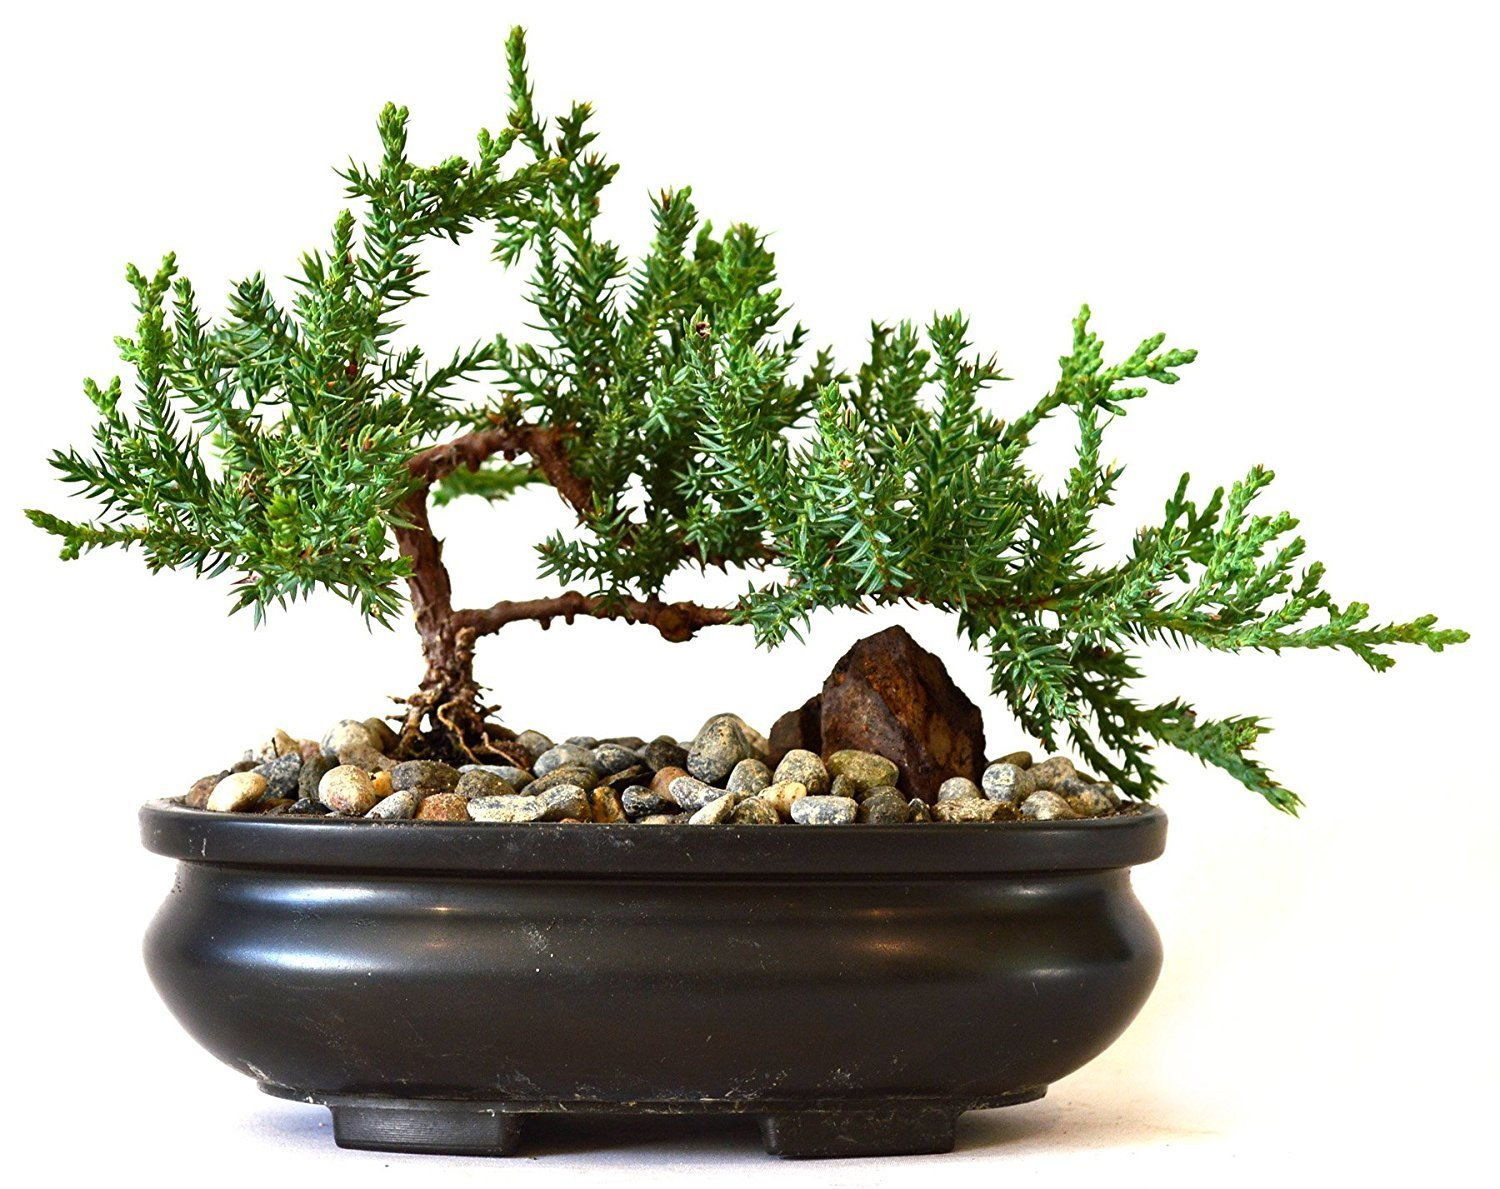 Bonsai plants be equipped large bonsai looking tree be equipped how to create a bonsai tree be equipped best bonsai trees in the world